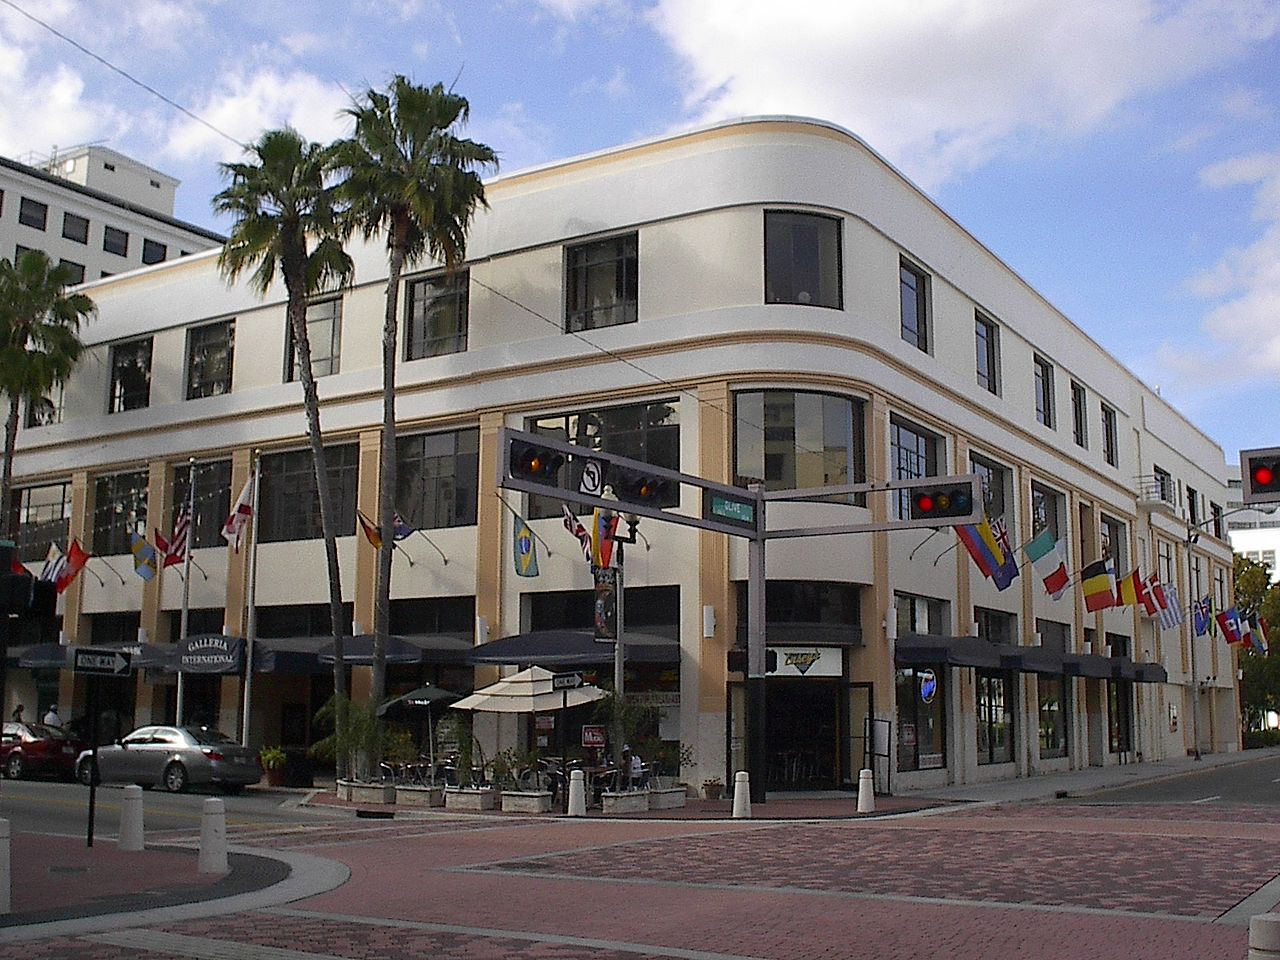 The historic Hatch's Department Store Building is a fine example of Moderne architecture.